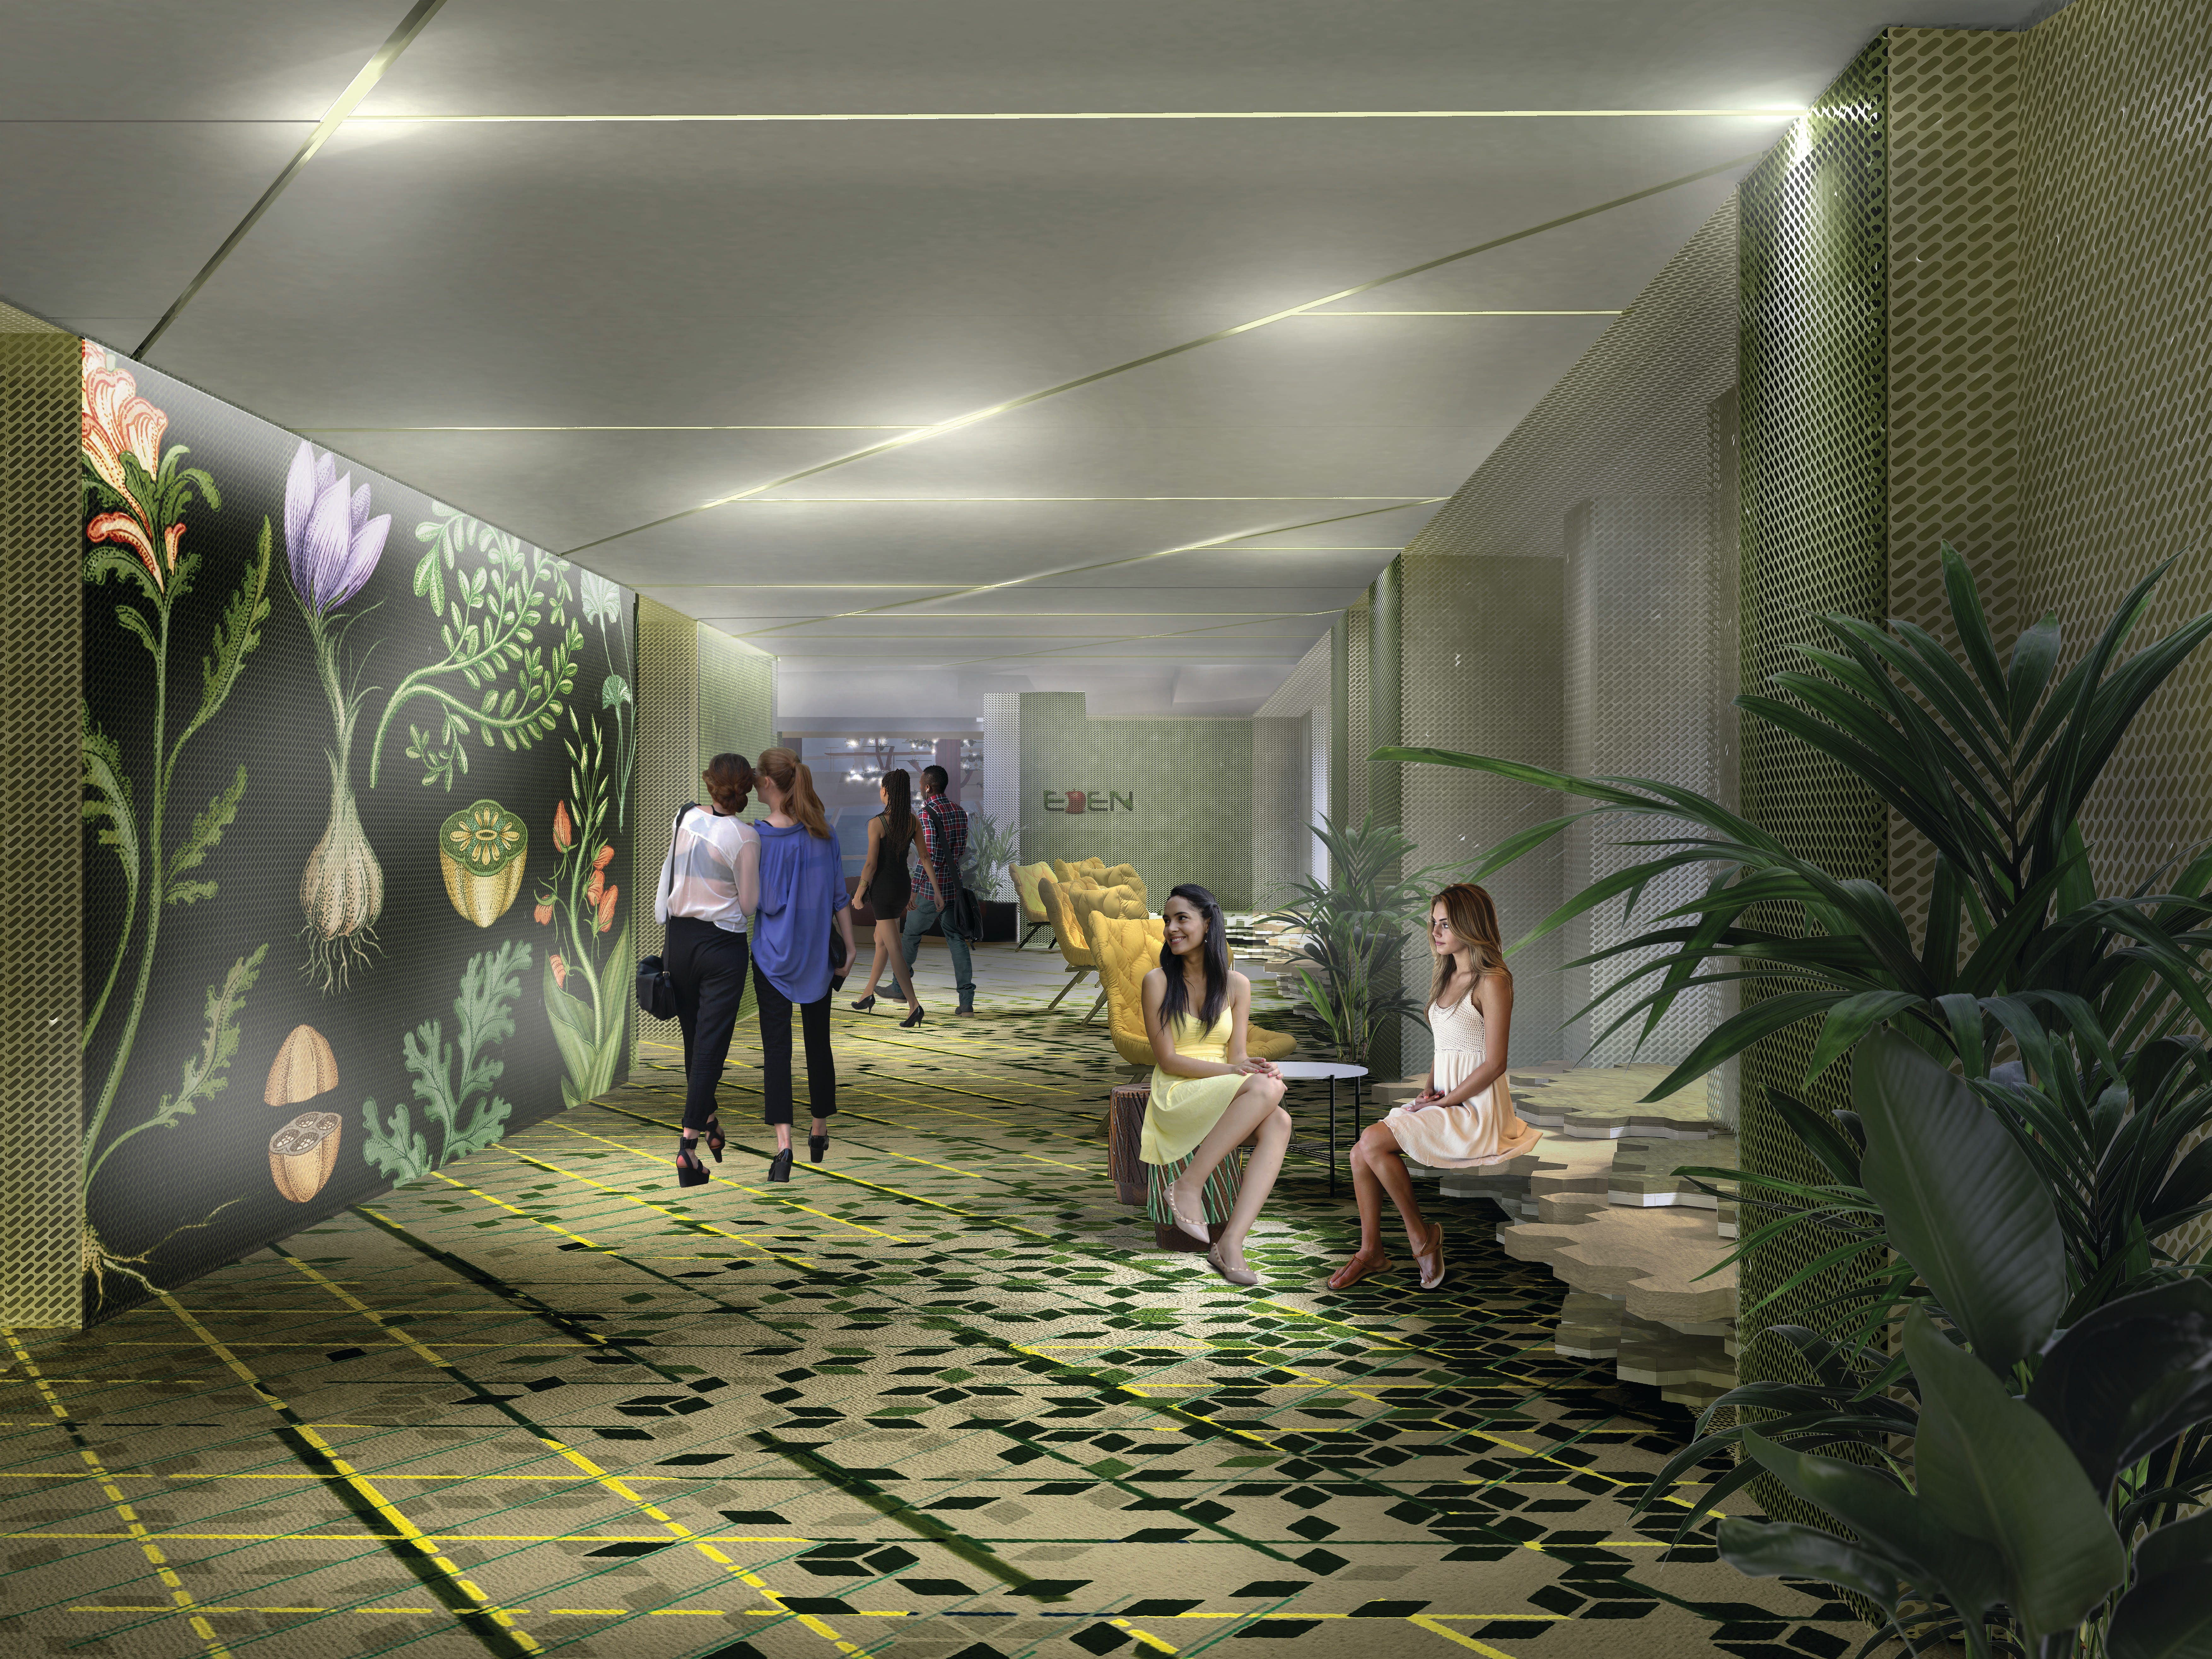 Upon entering Eden, passengers will be greeted by an animated botanic art installation designed by Kate Scott.